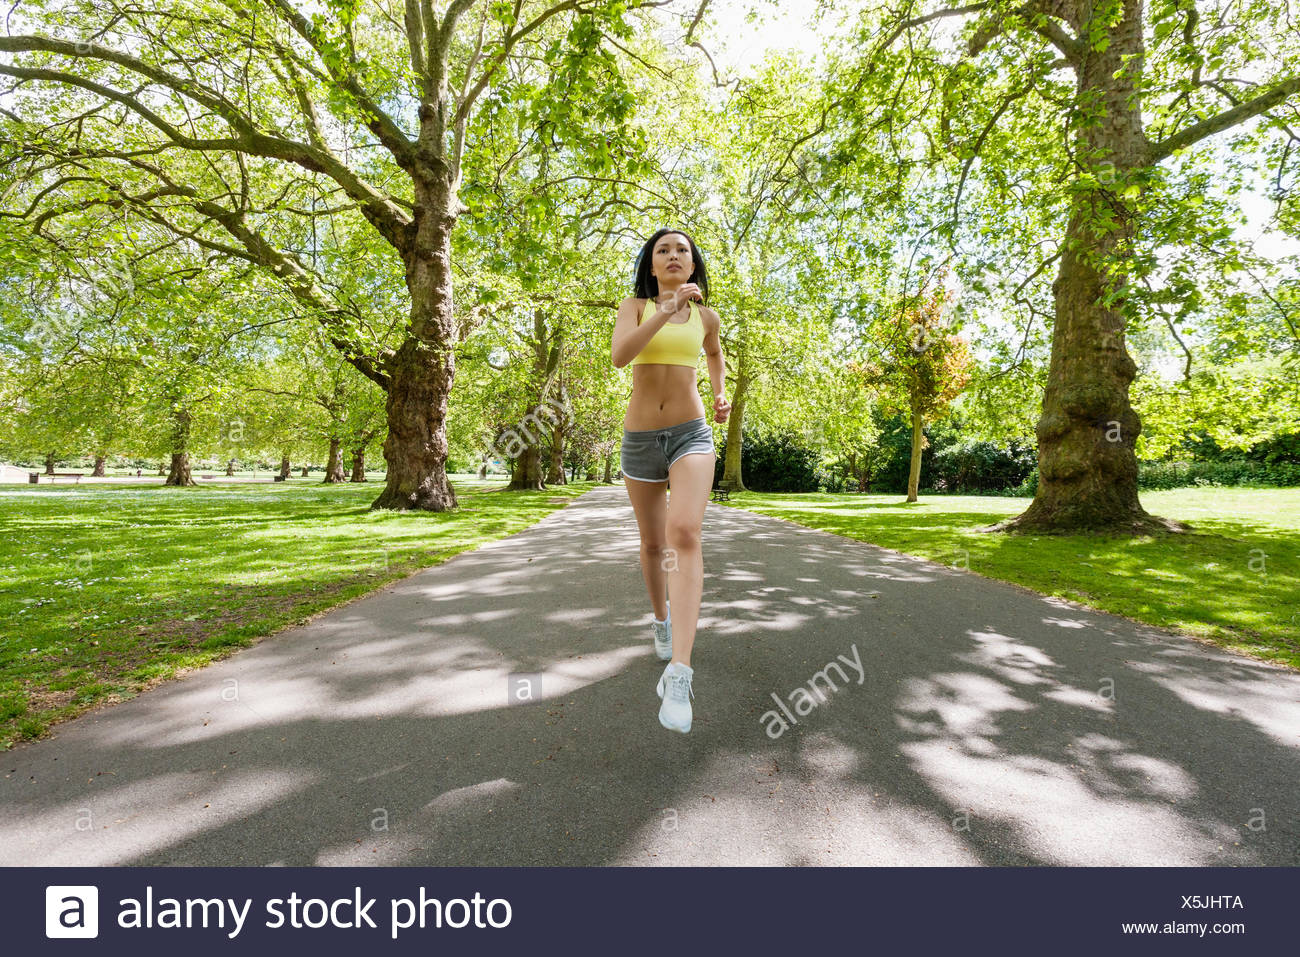 Full length of determined fit woman jogging at park - Stock Image